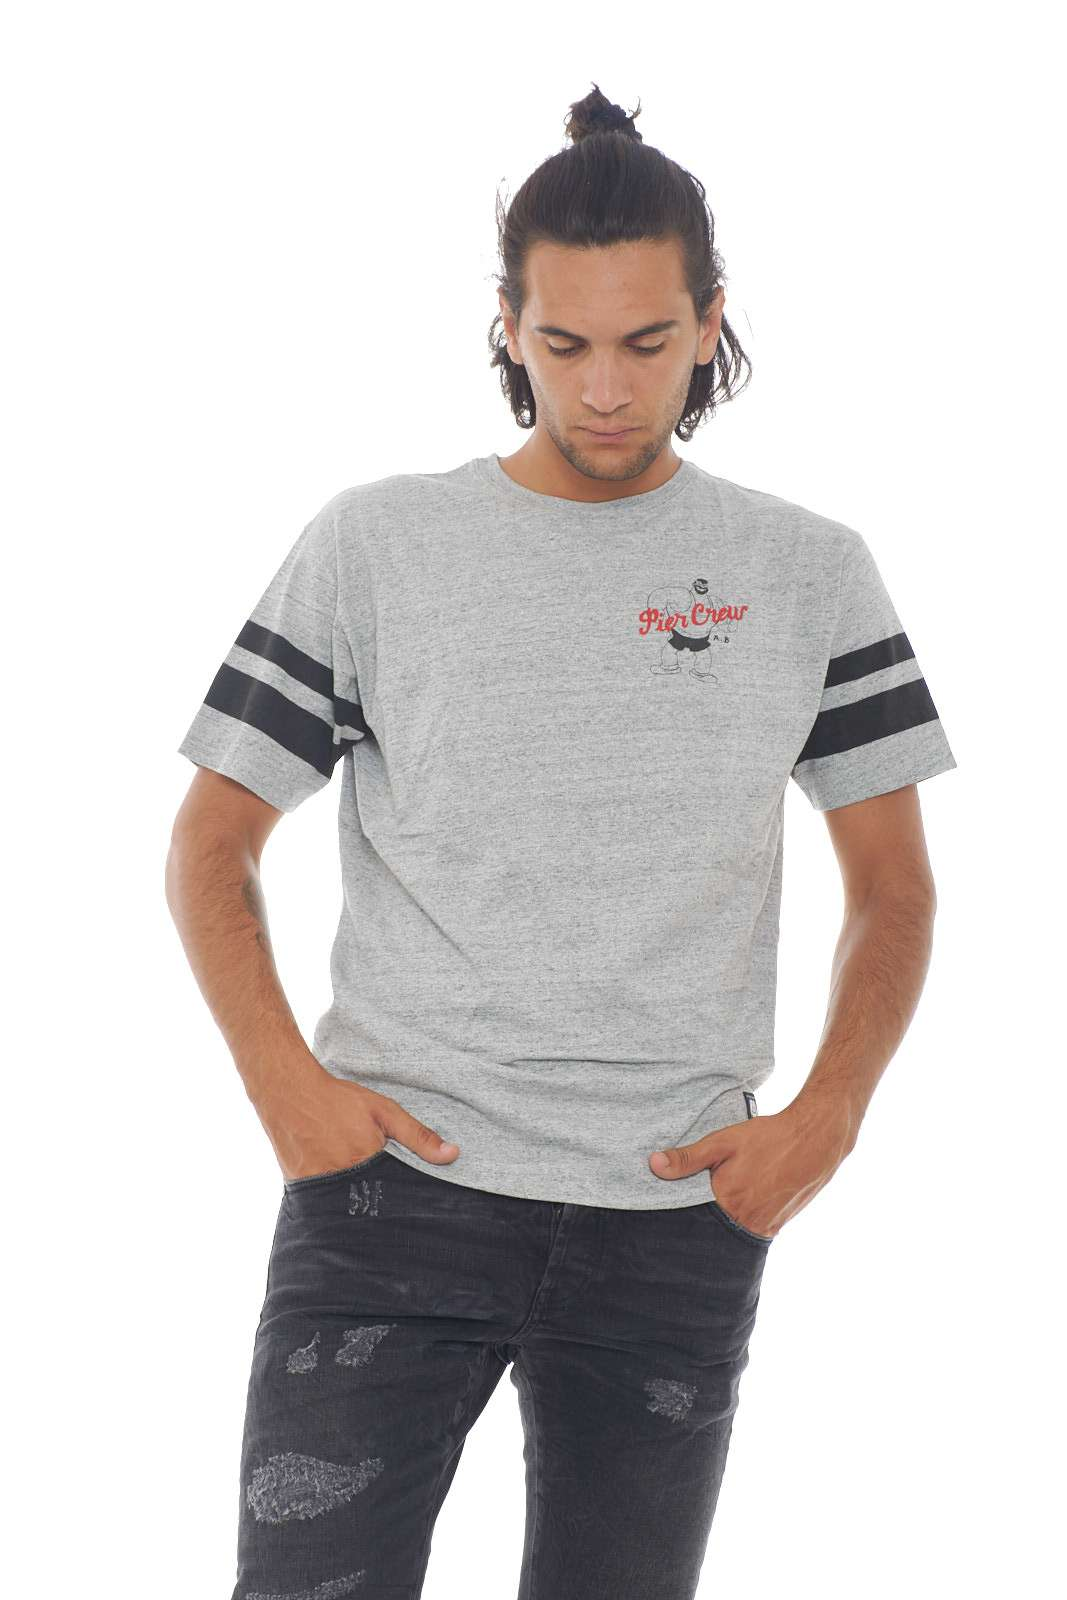 https://www.parmax.com/media/catalog/product/a/i/AI-outlet_parmax-t-shirt-uomo-scotch-e-Soda-150541-A.jpg